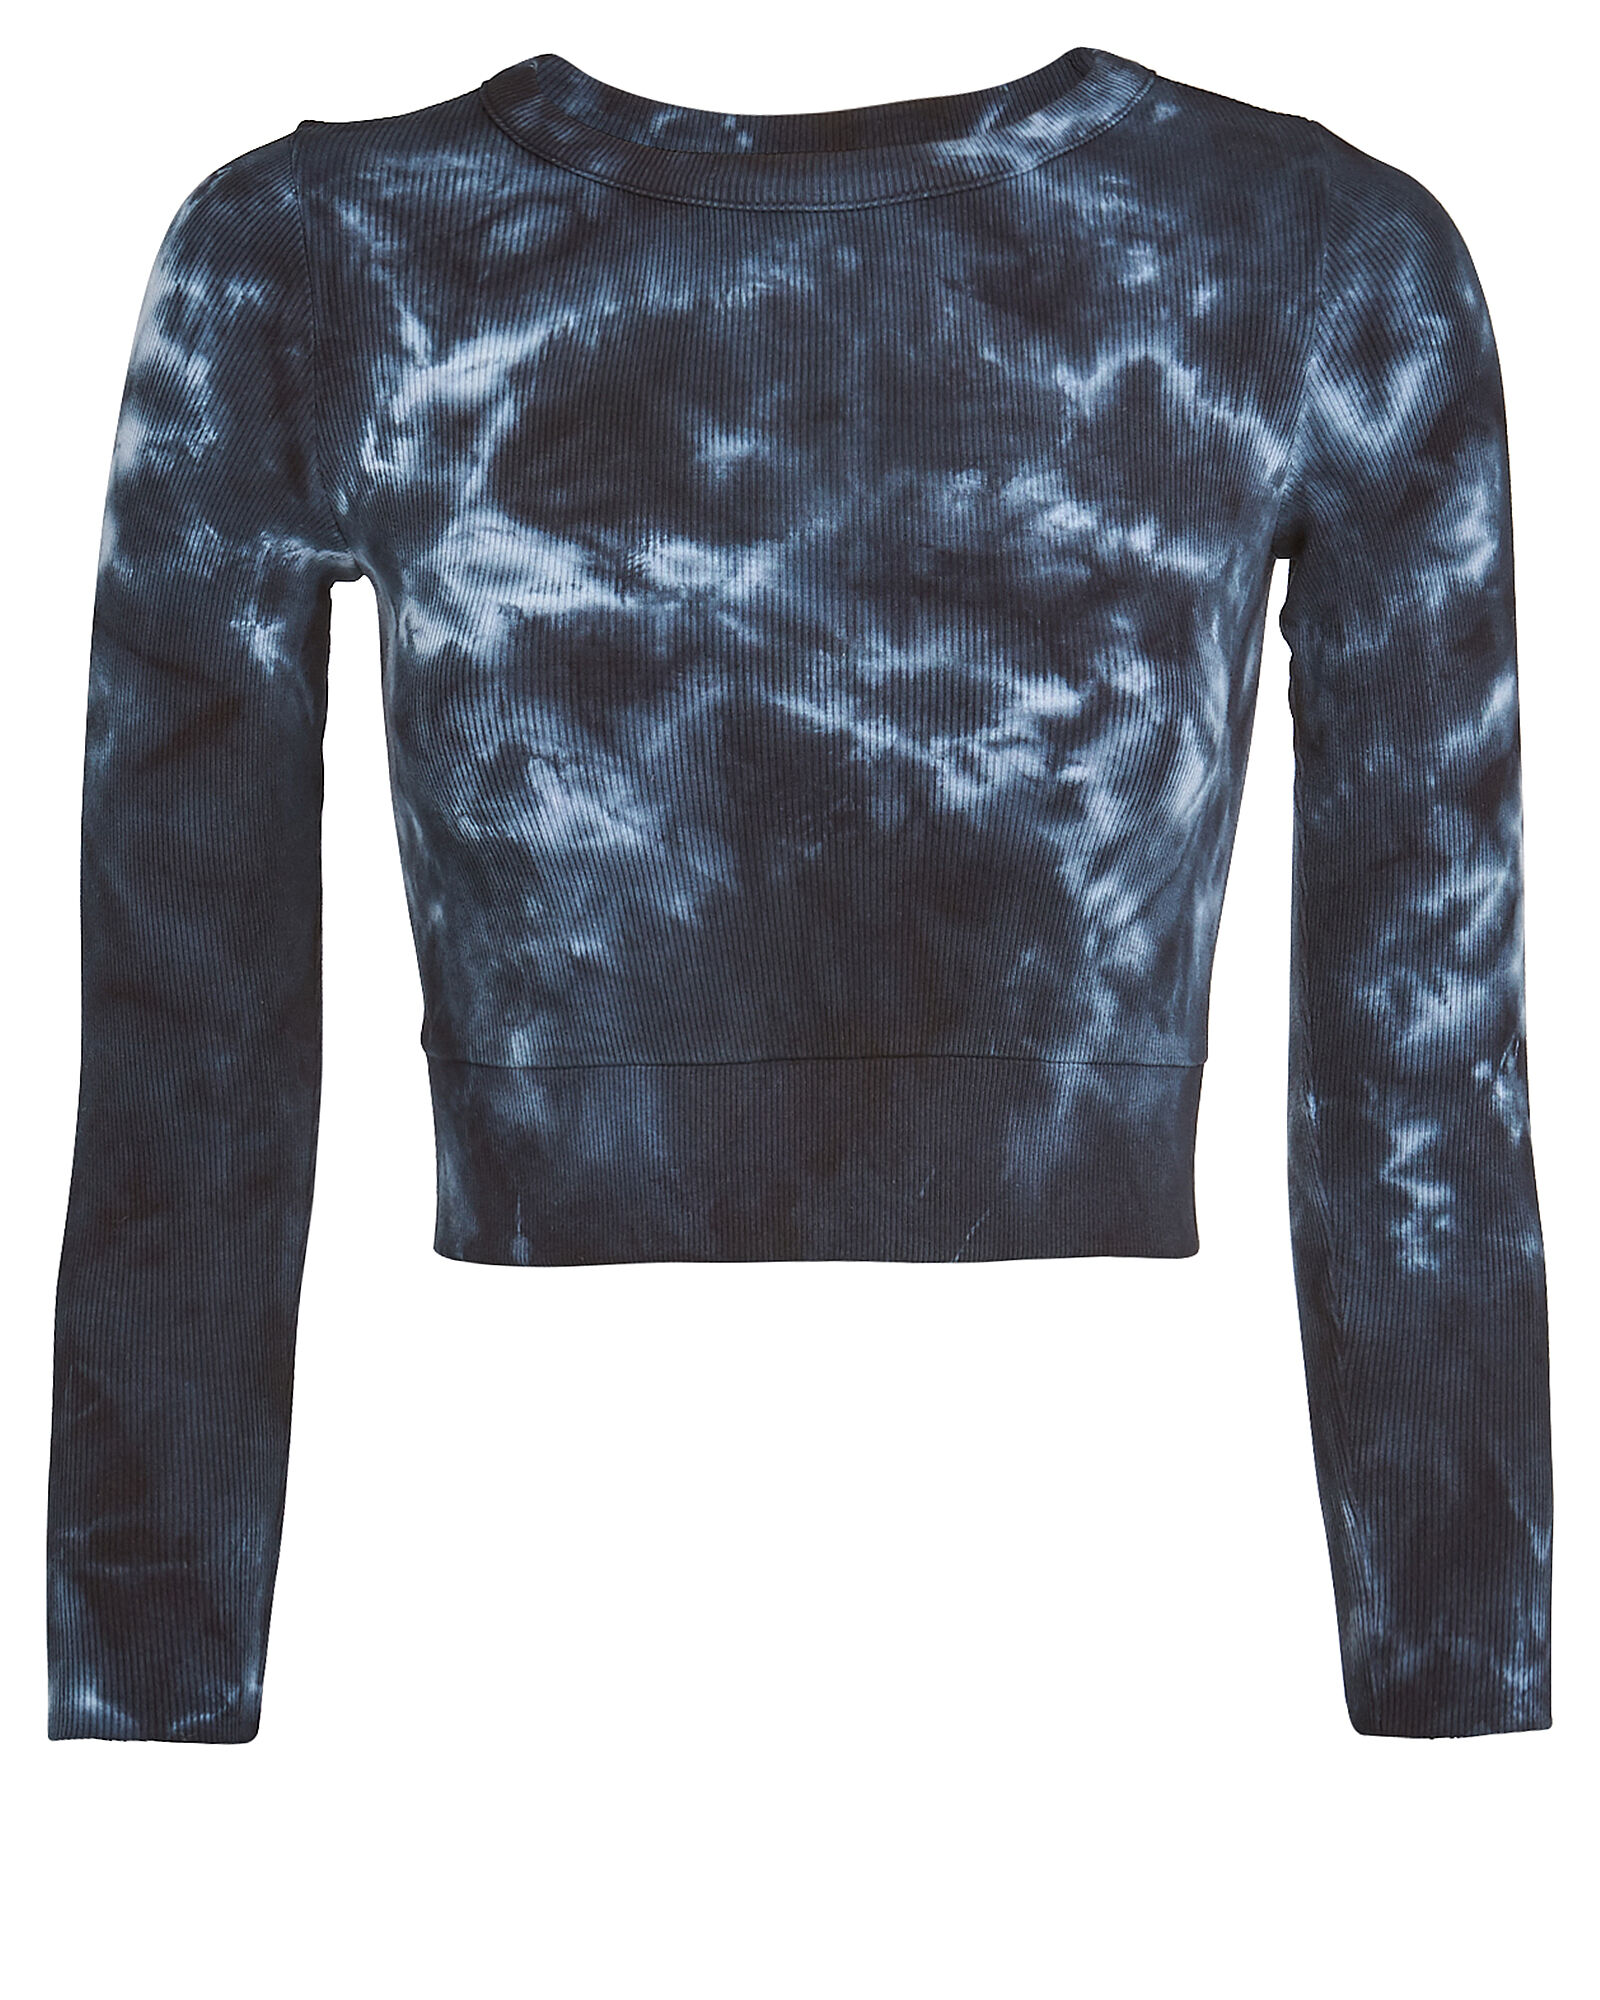 Beatrice Tie-Dye Crewneck Top, MULTI, hi-res